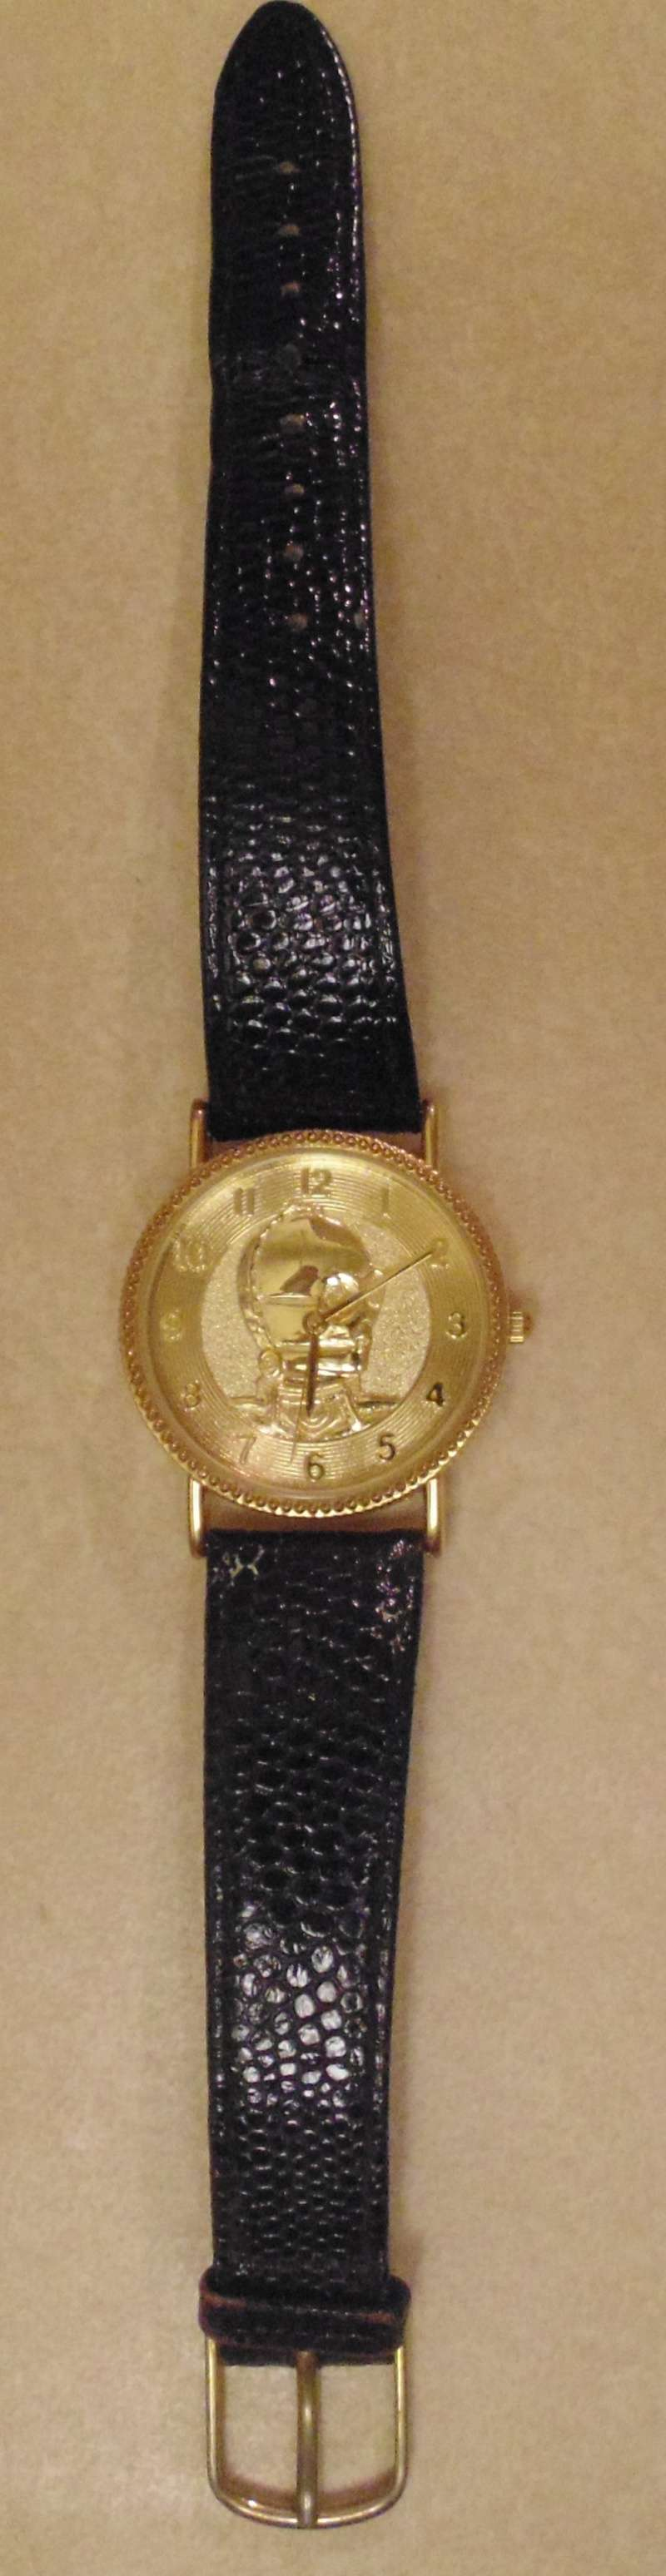 Need help trying to figure out this Watch Dsc00010